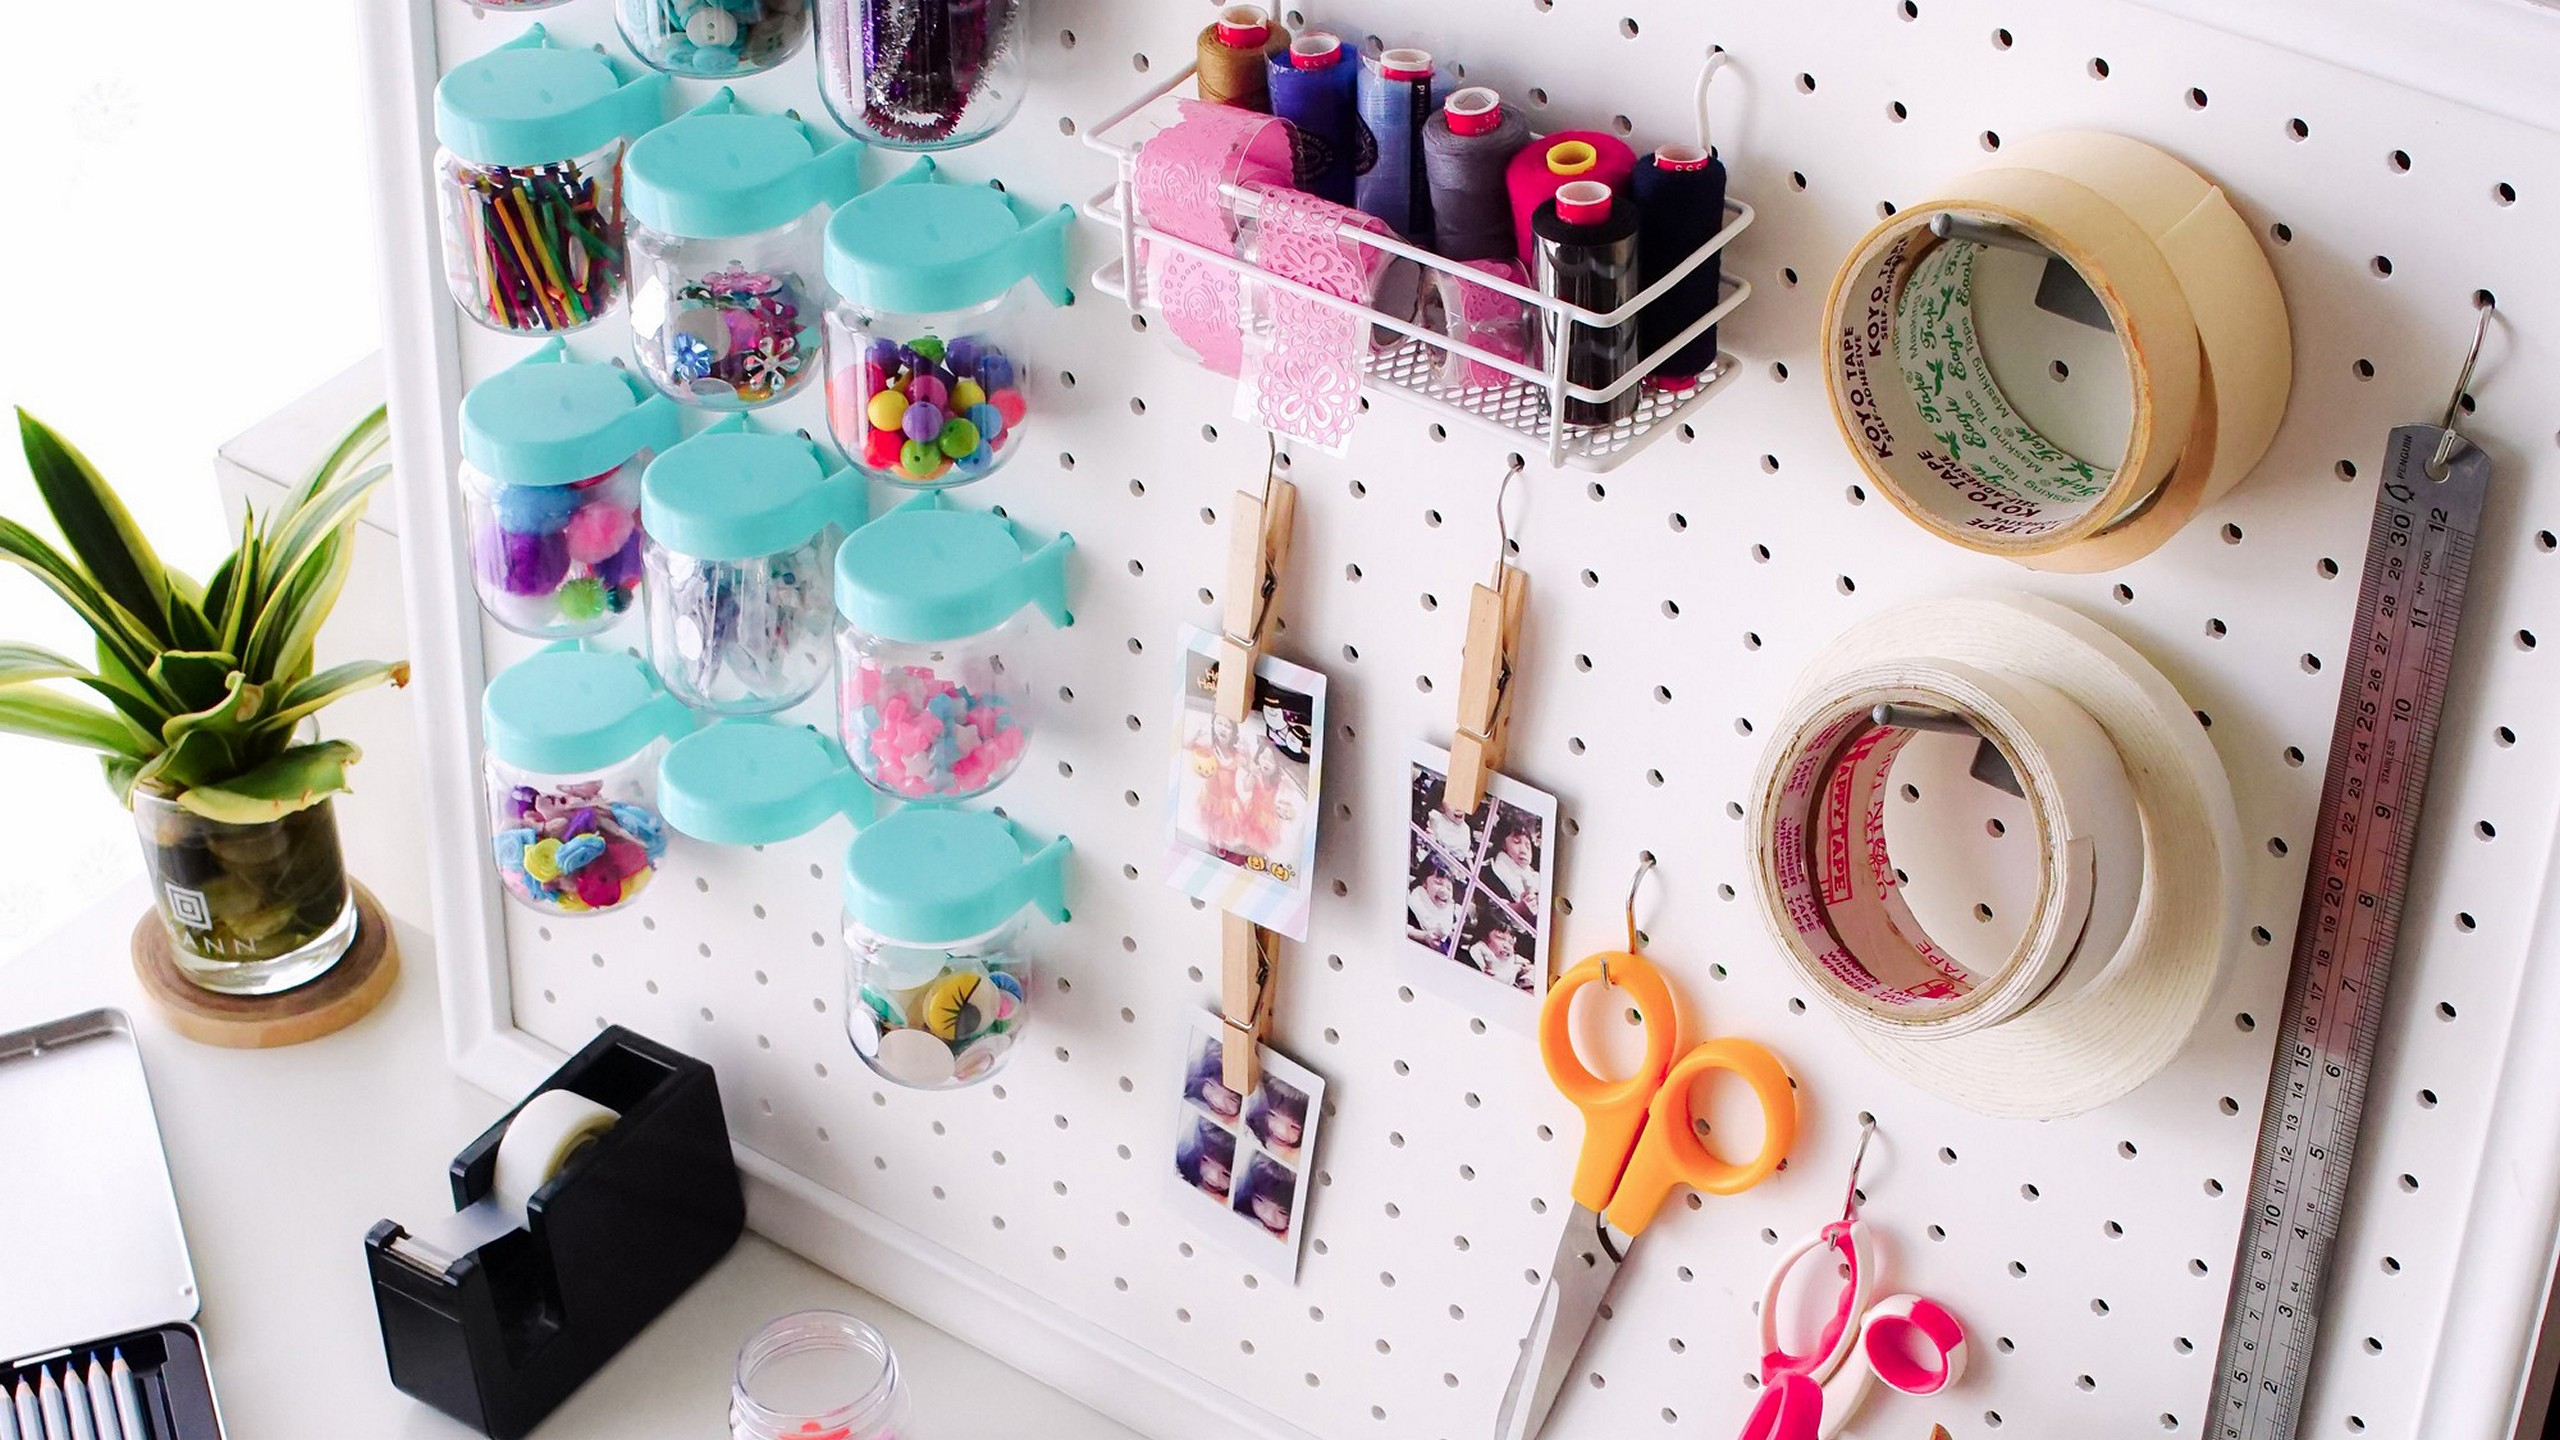 Spring is around the corner,  I am going to show you 6 small space organization hacks for decluttering and reorganizing your craft space.